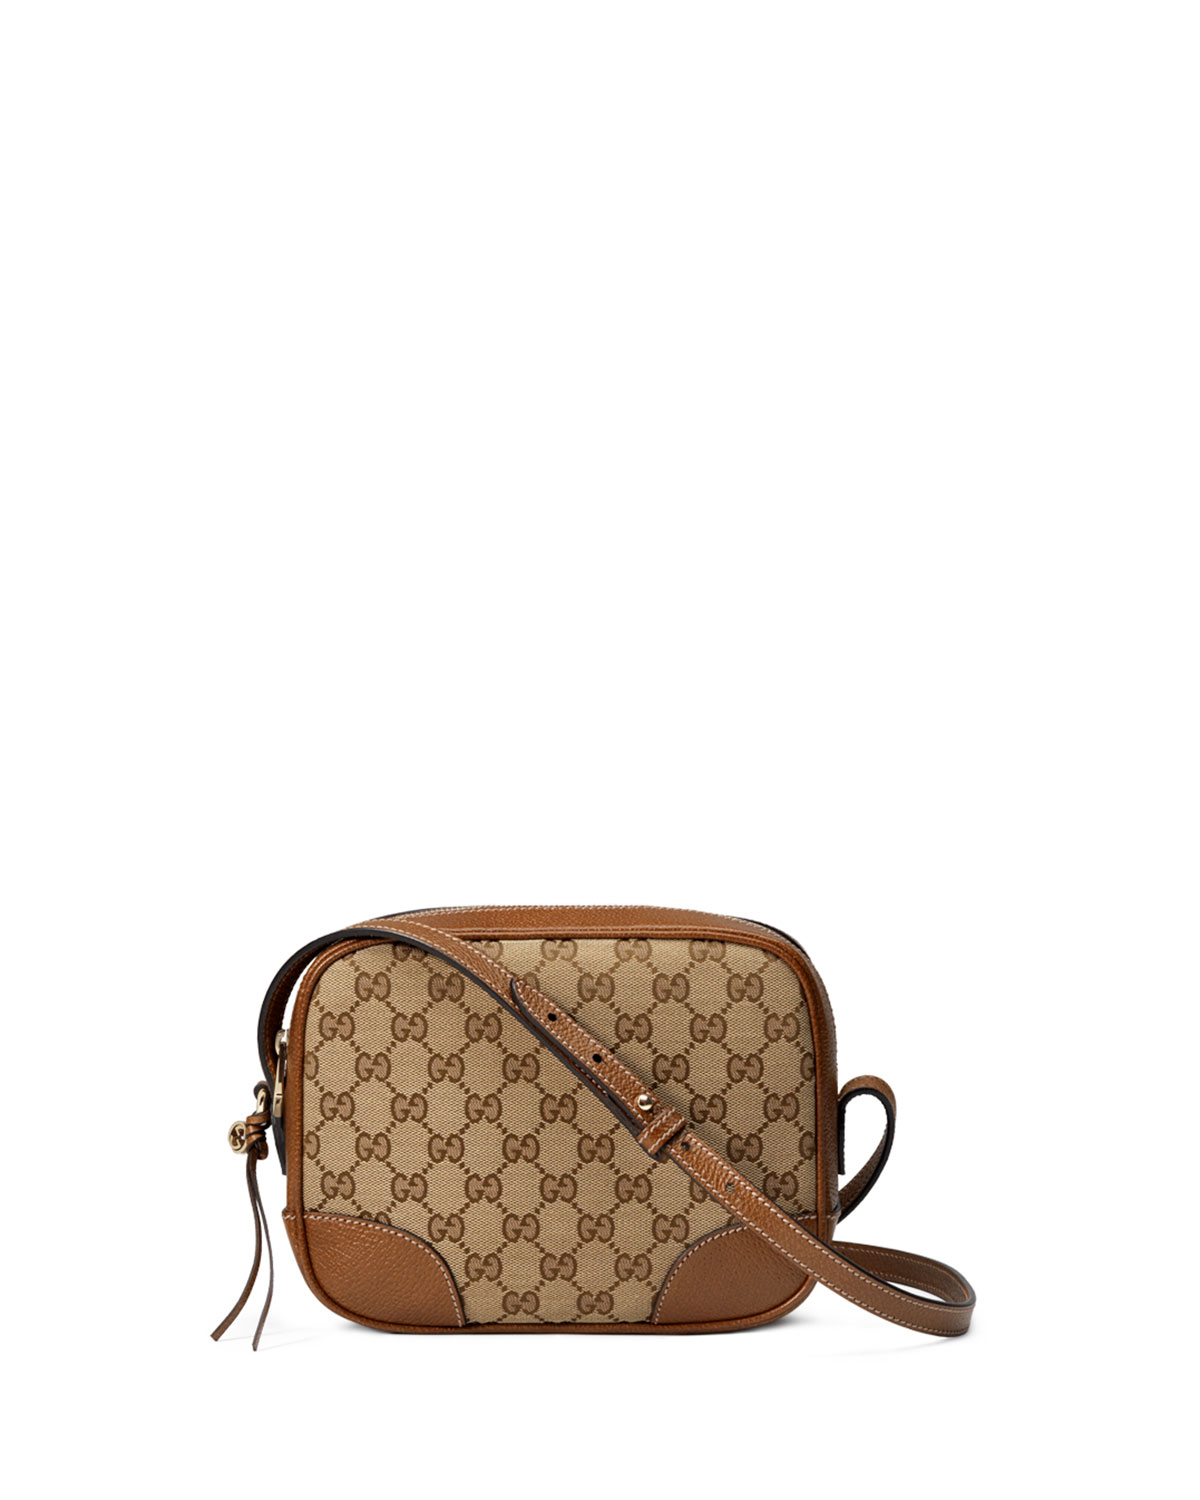 9505aa6a0a14 Gucci Bree Original GG Canvas Disco Bag